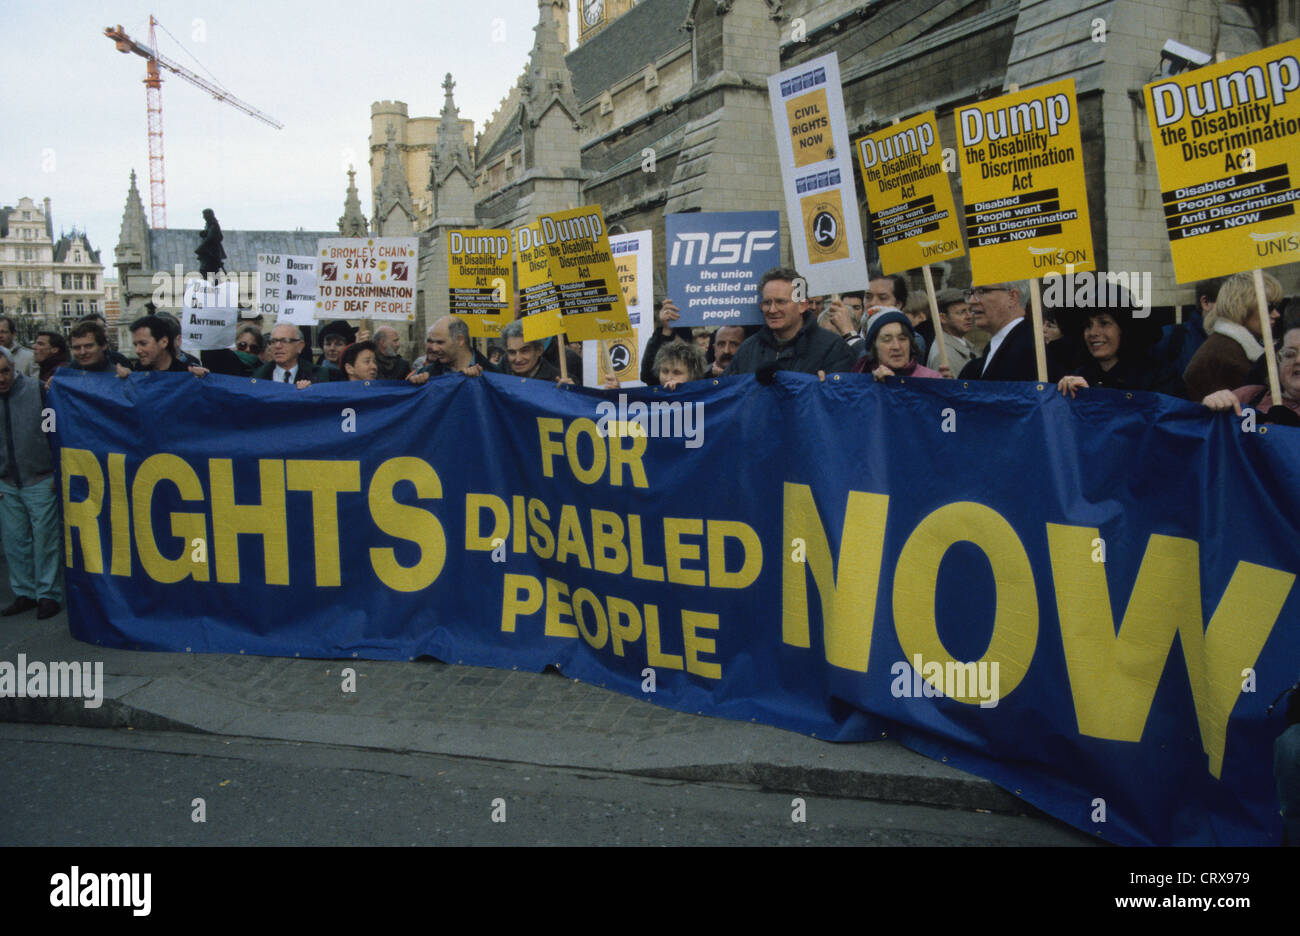 Disabled rights protesters at Parliament, Westminster England UK - Stock Image